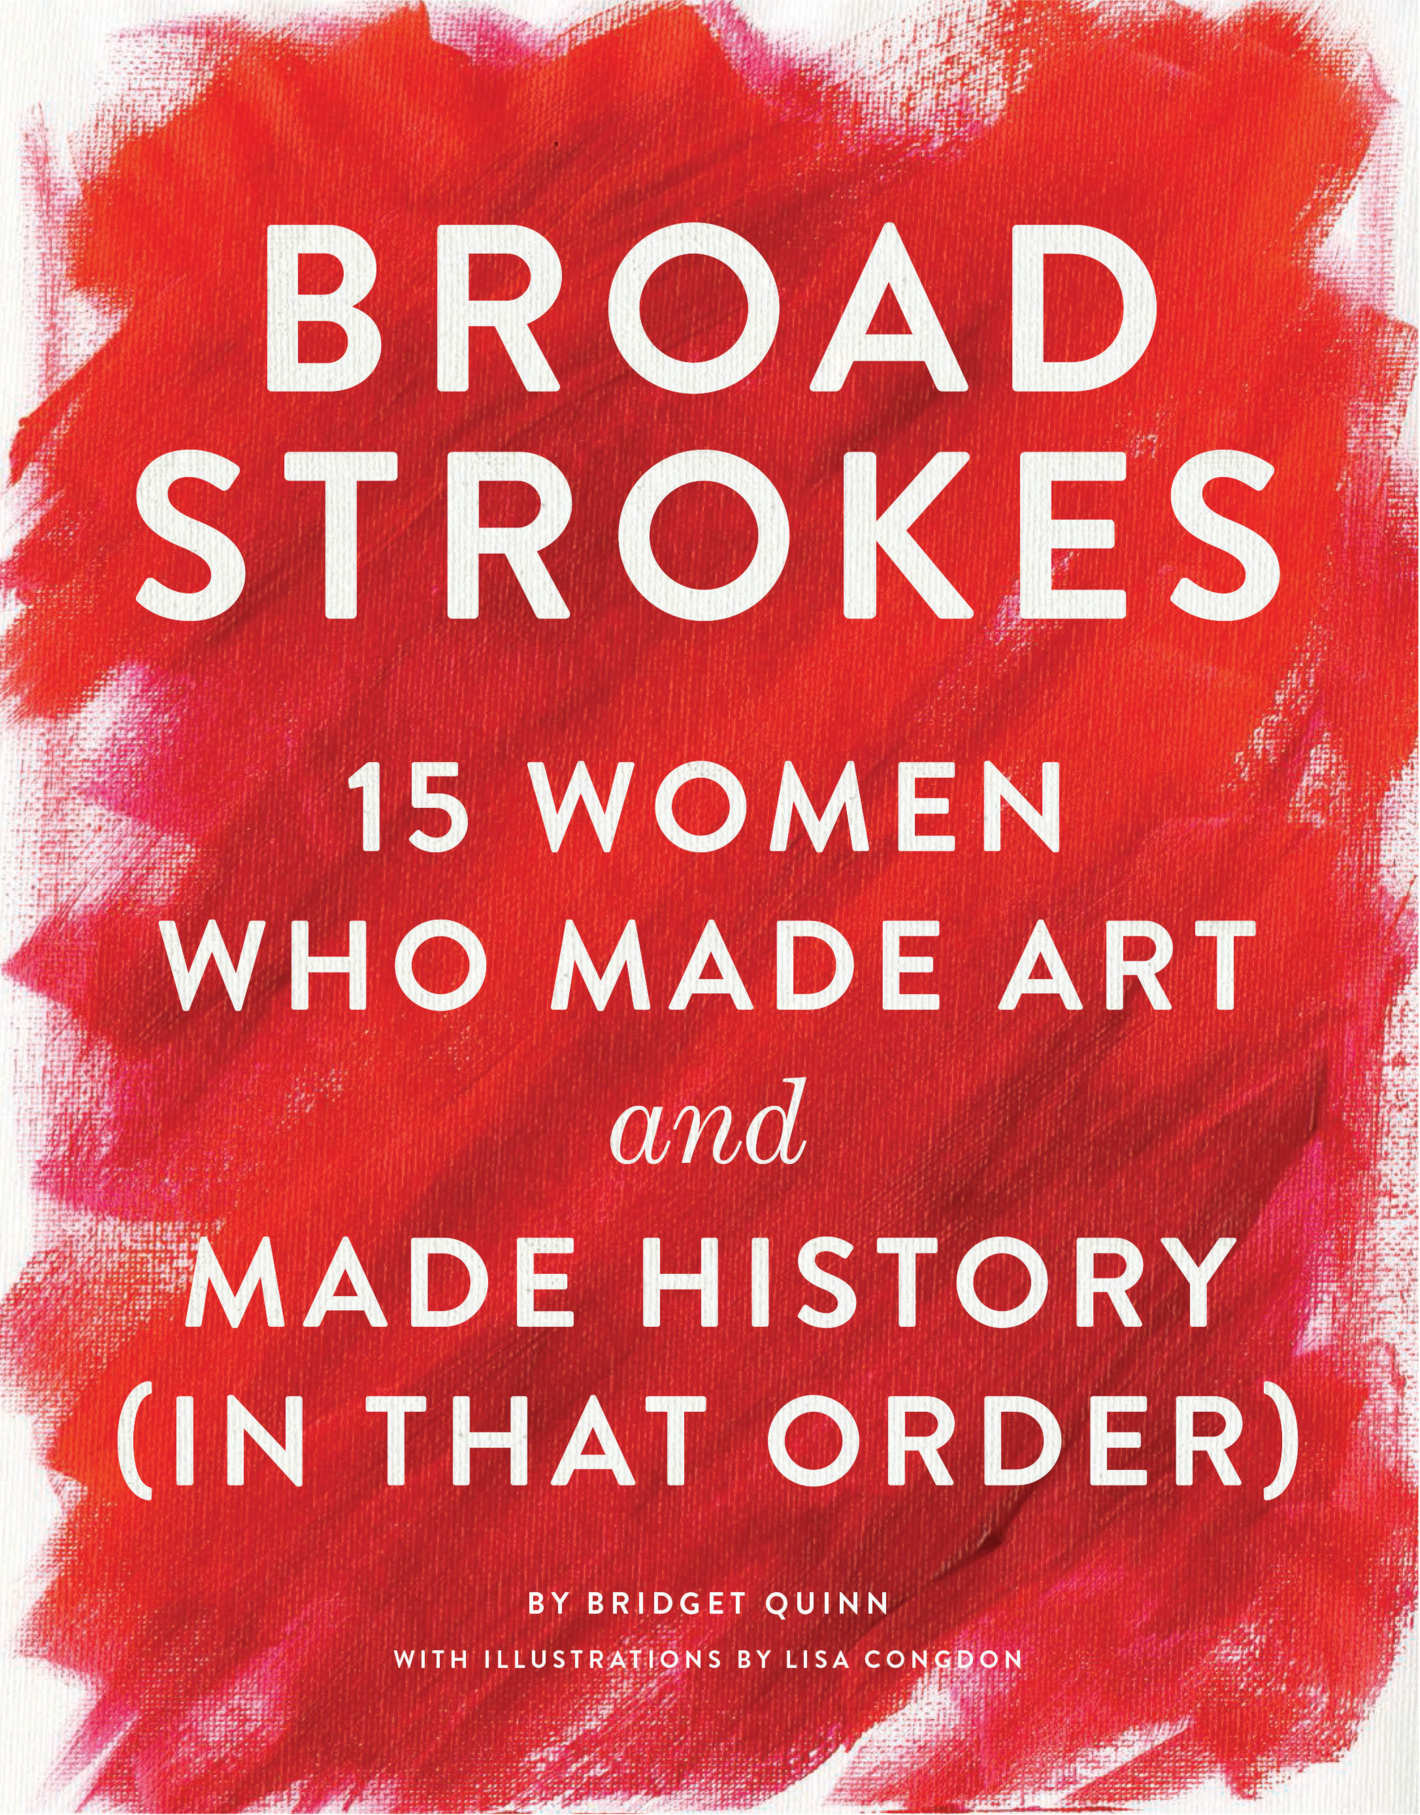 broad strokes by bridget quinn.jpg